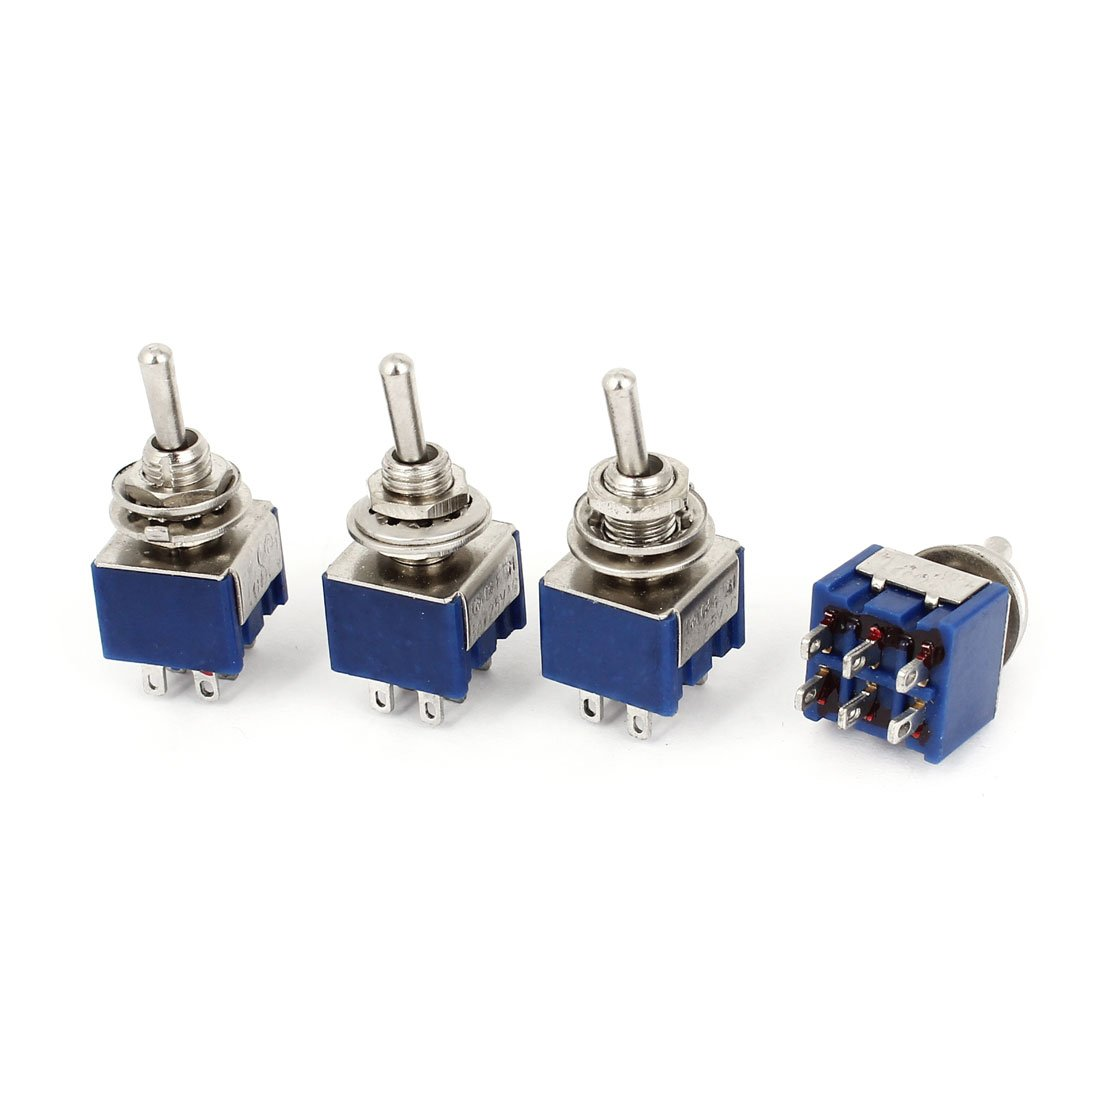 uxcell a14103100ux0366 free Toggle Switch AC 125V 6 DPST sale Posi 3 Amp